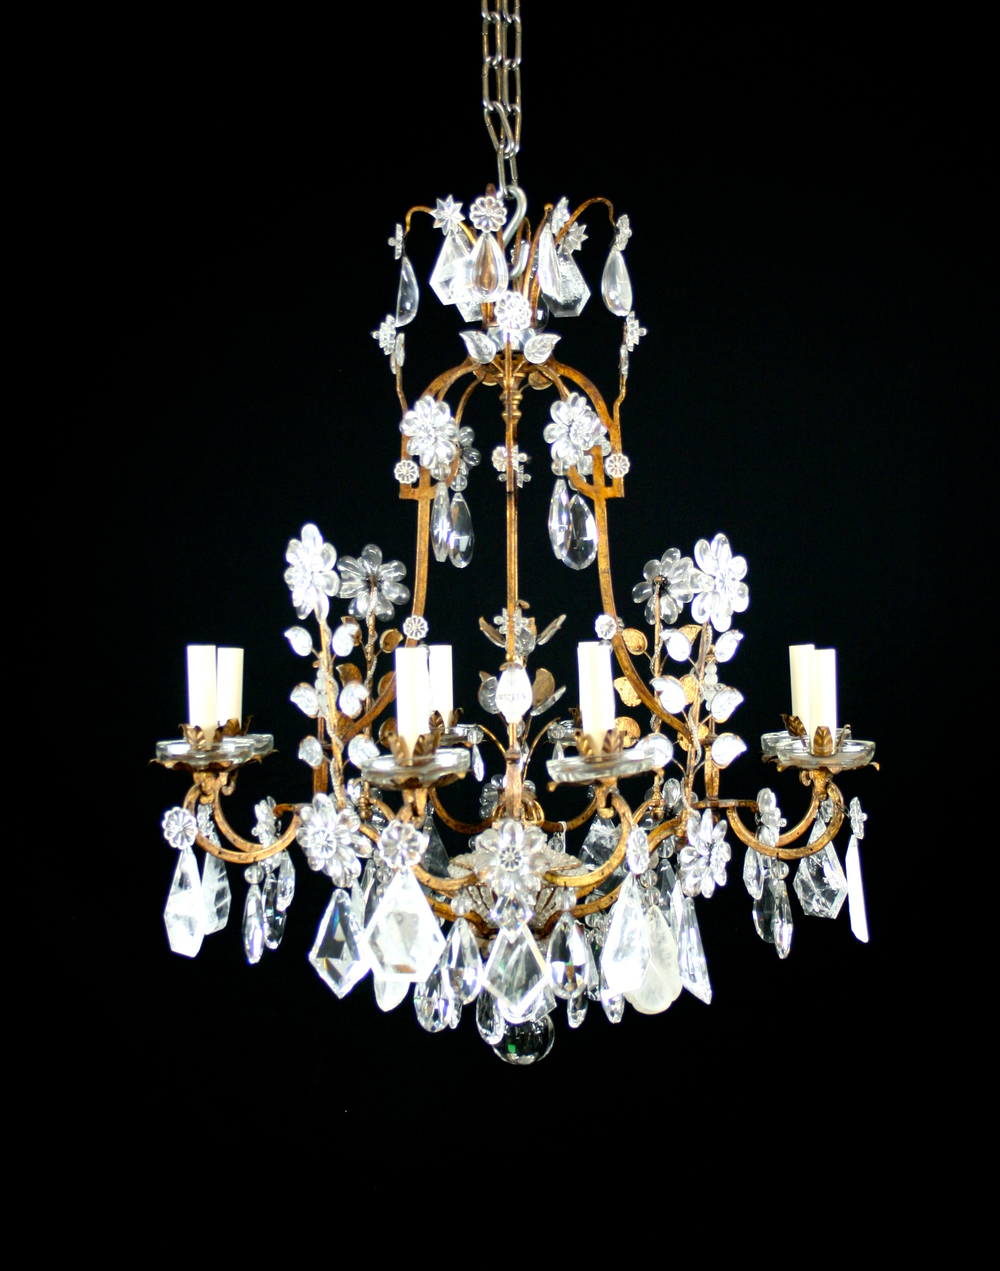 & nesle inc antique chandeliers and reproductions new york.Chandeliers azcodes.com